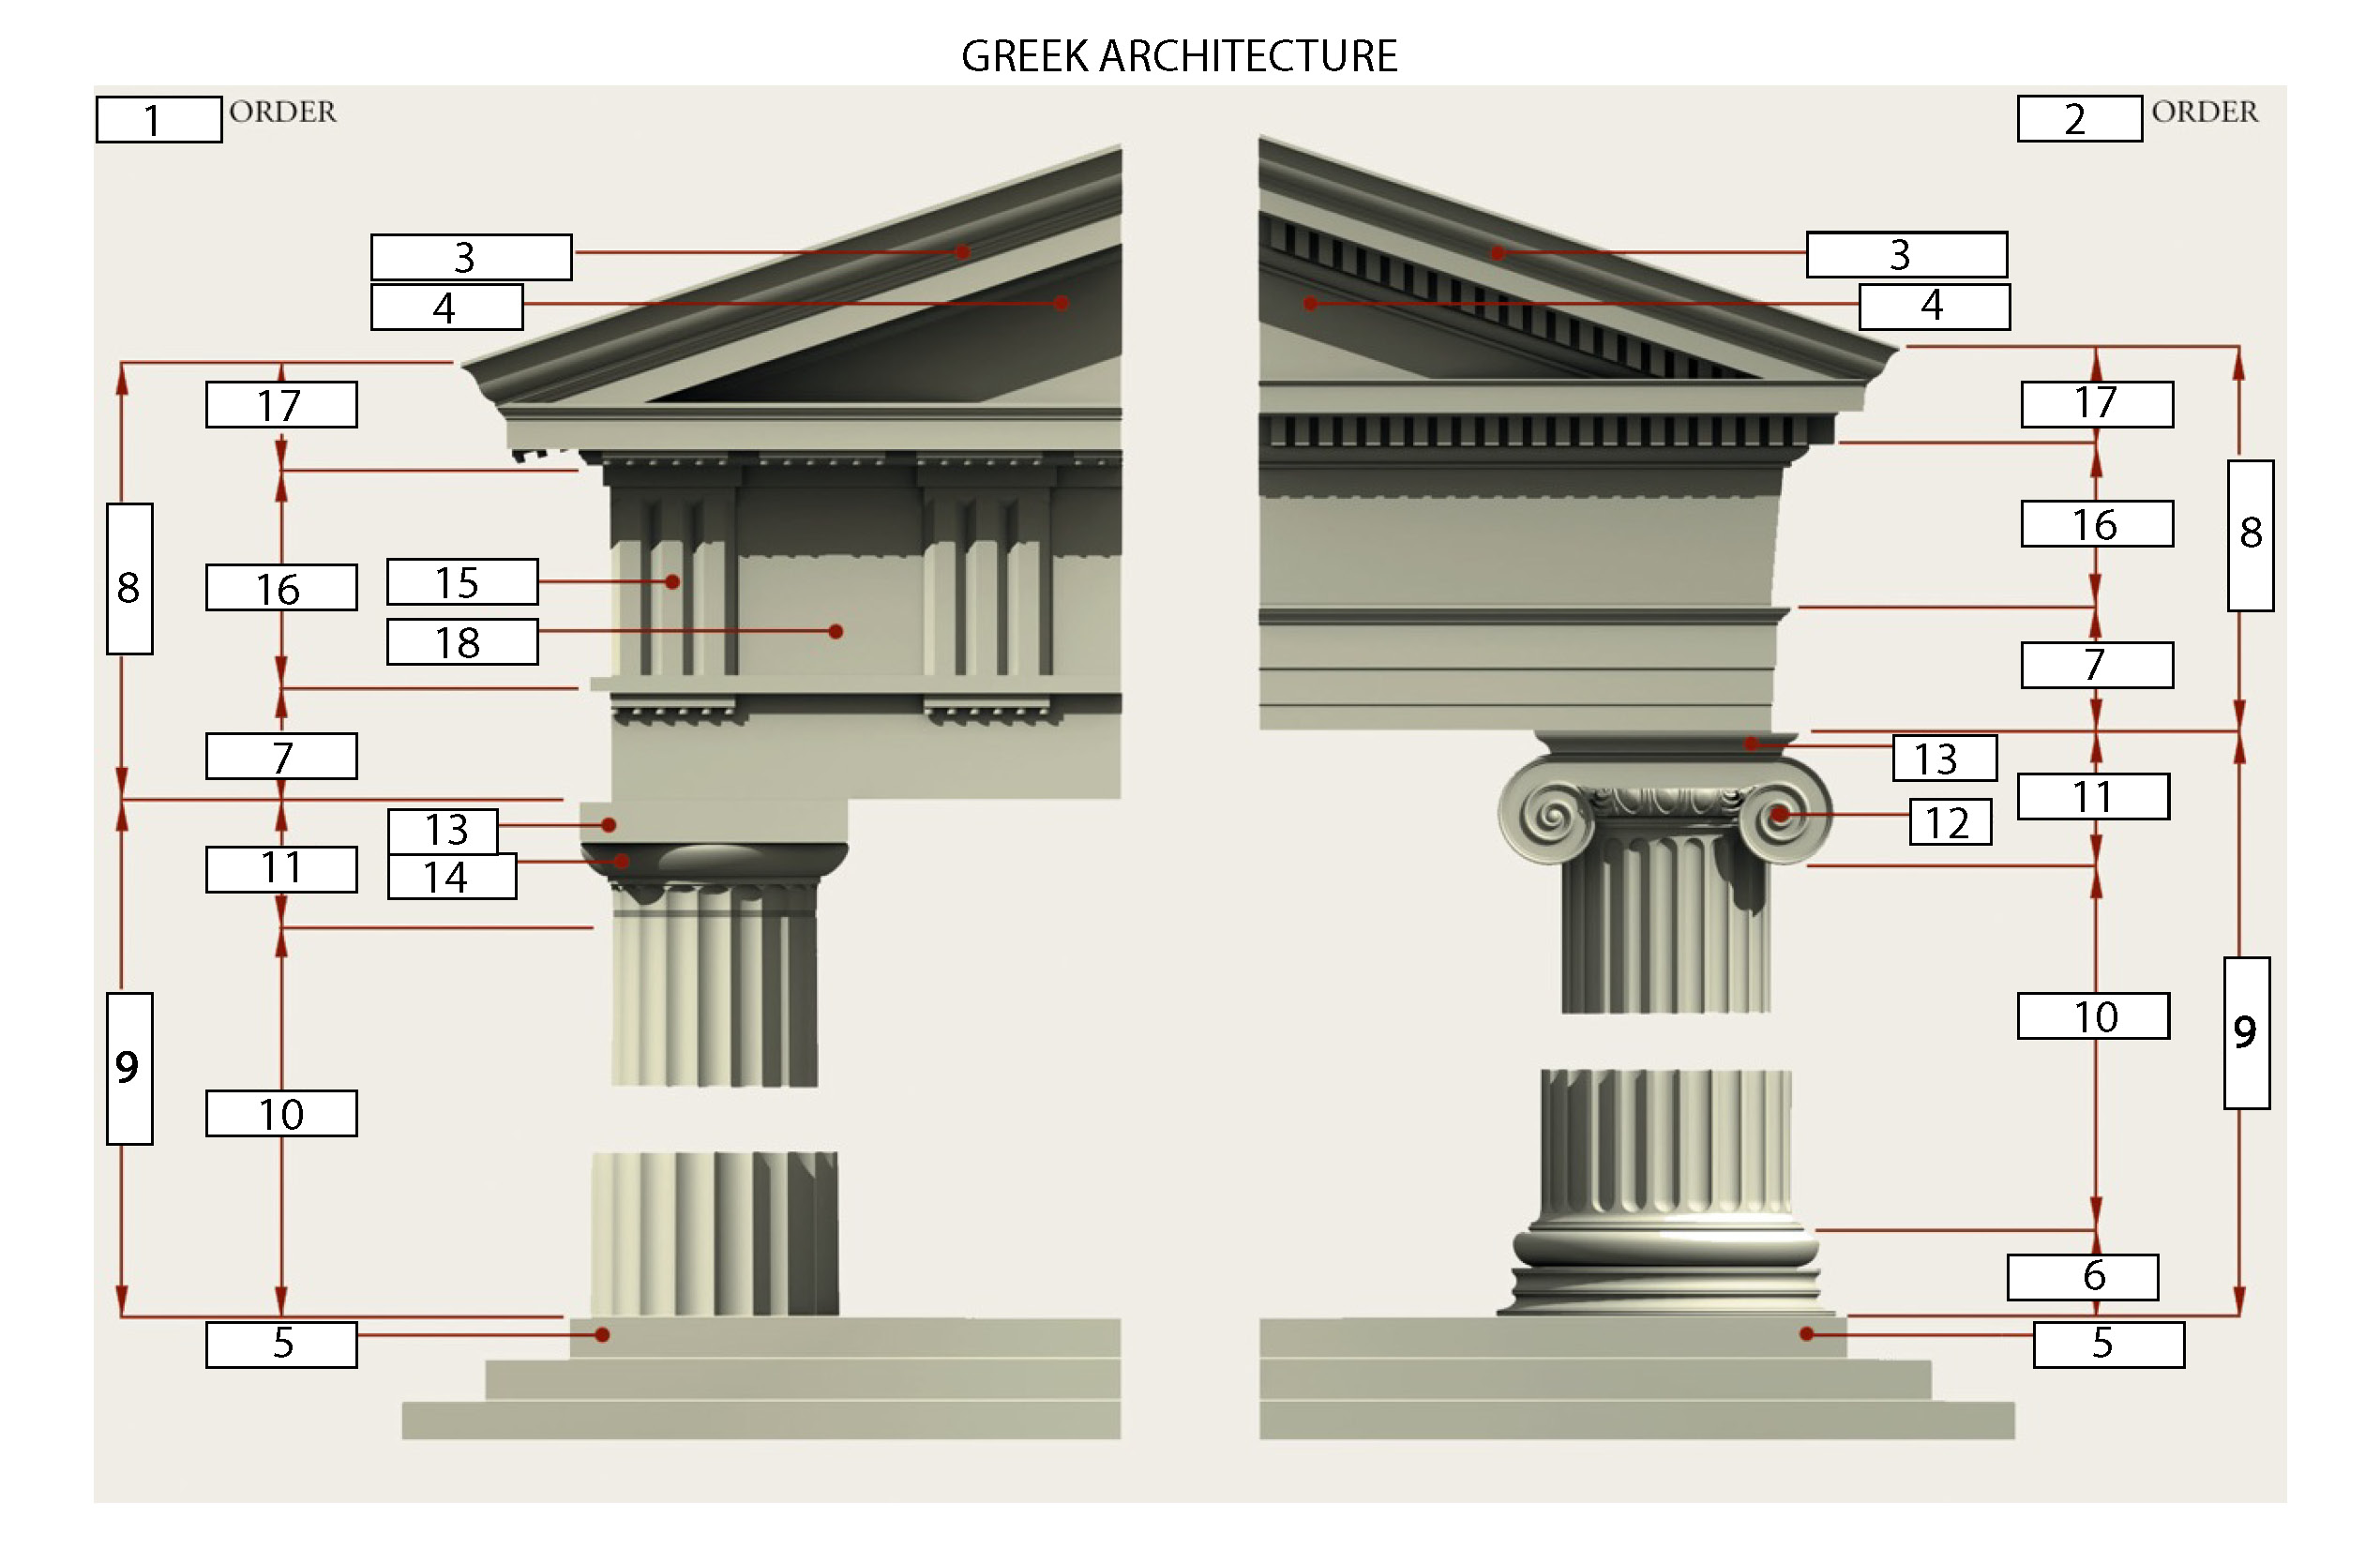 doric vs ionic architecture essay The simplest, doric, consisted of columns with plain molded capitals and no base ionic capitals were decorated with a pair of scrolls, known as volutes corinthian capitals, the most ornate, were decorated with an inverted bell-shaped arrangement of leaves.